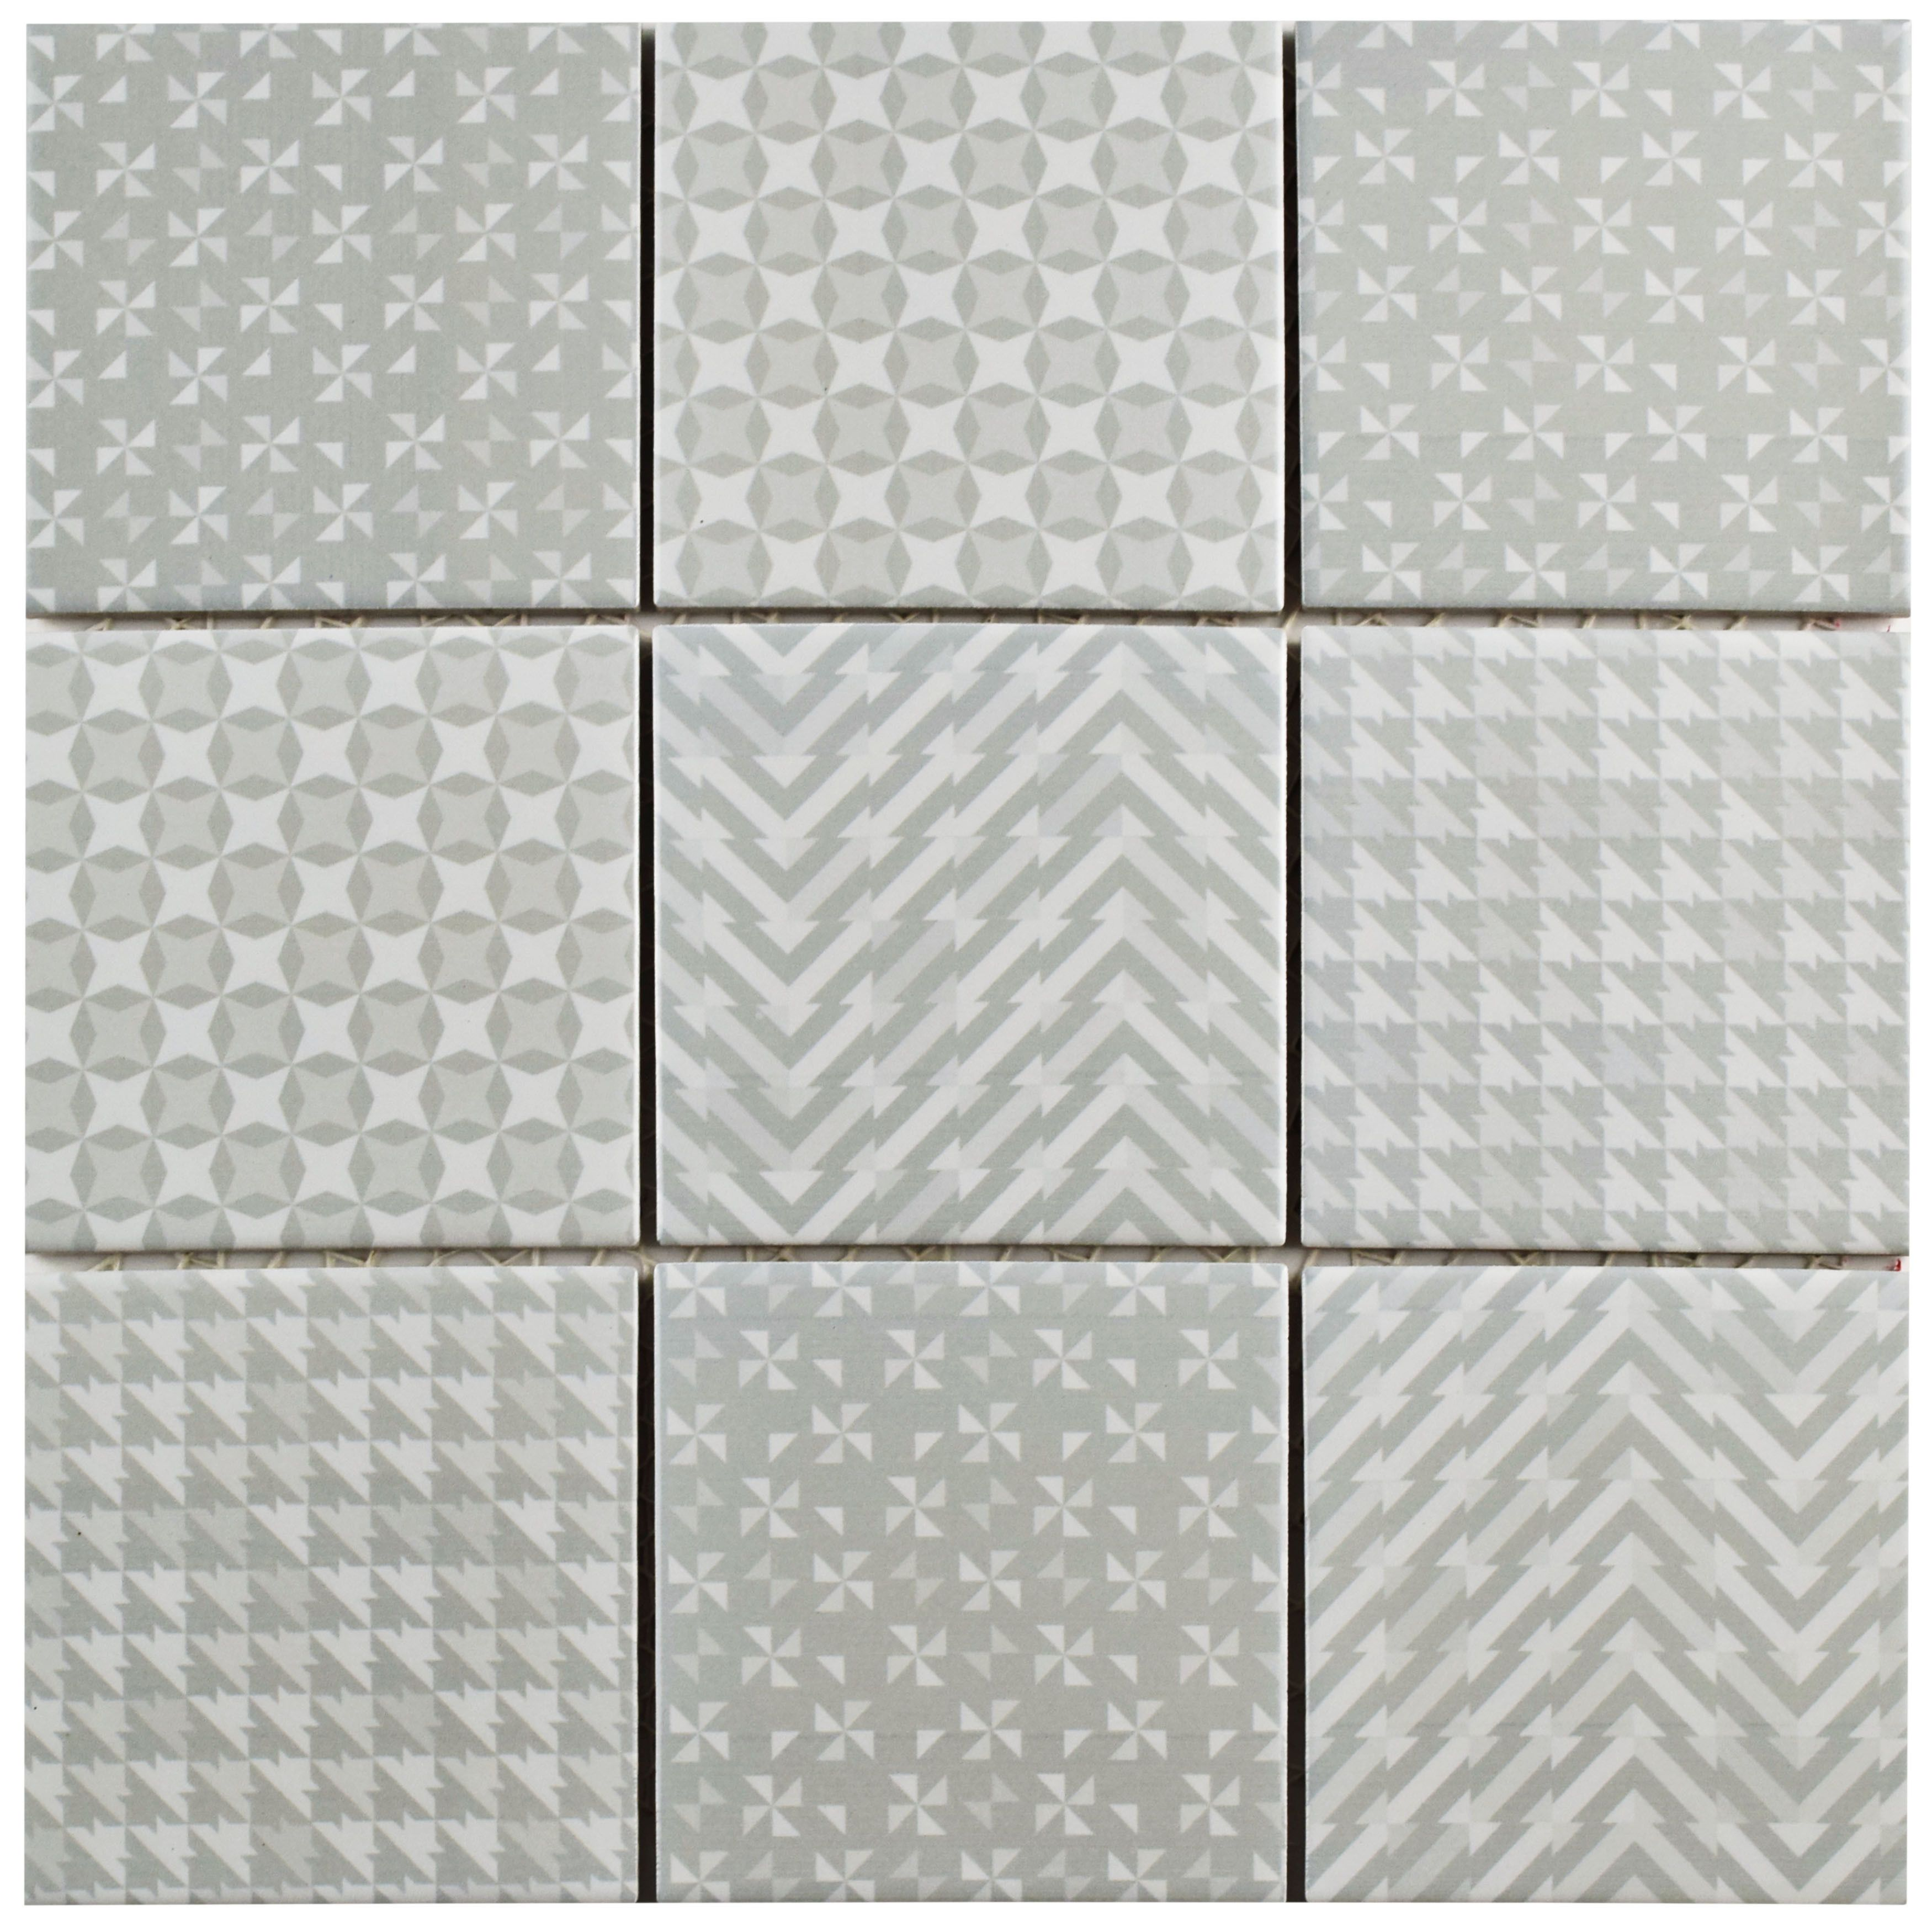 The Somertile 11 625x11 625 Inch Geoshine Grey Porcelain Floor And Wall Tile Captures